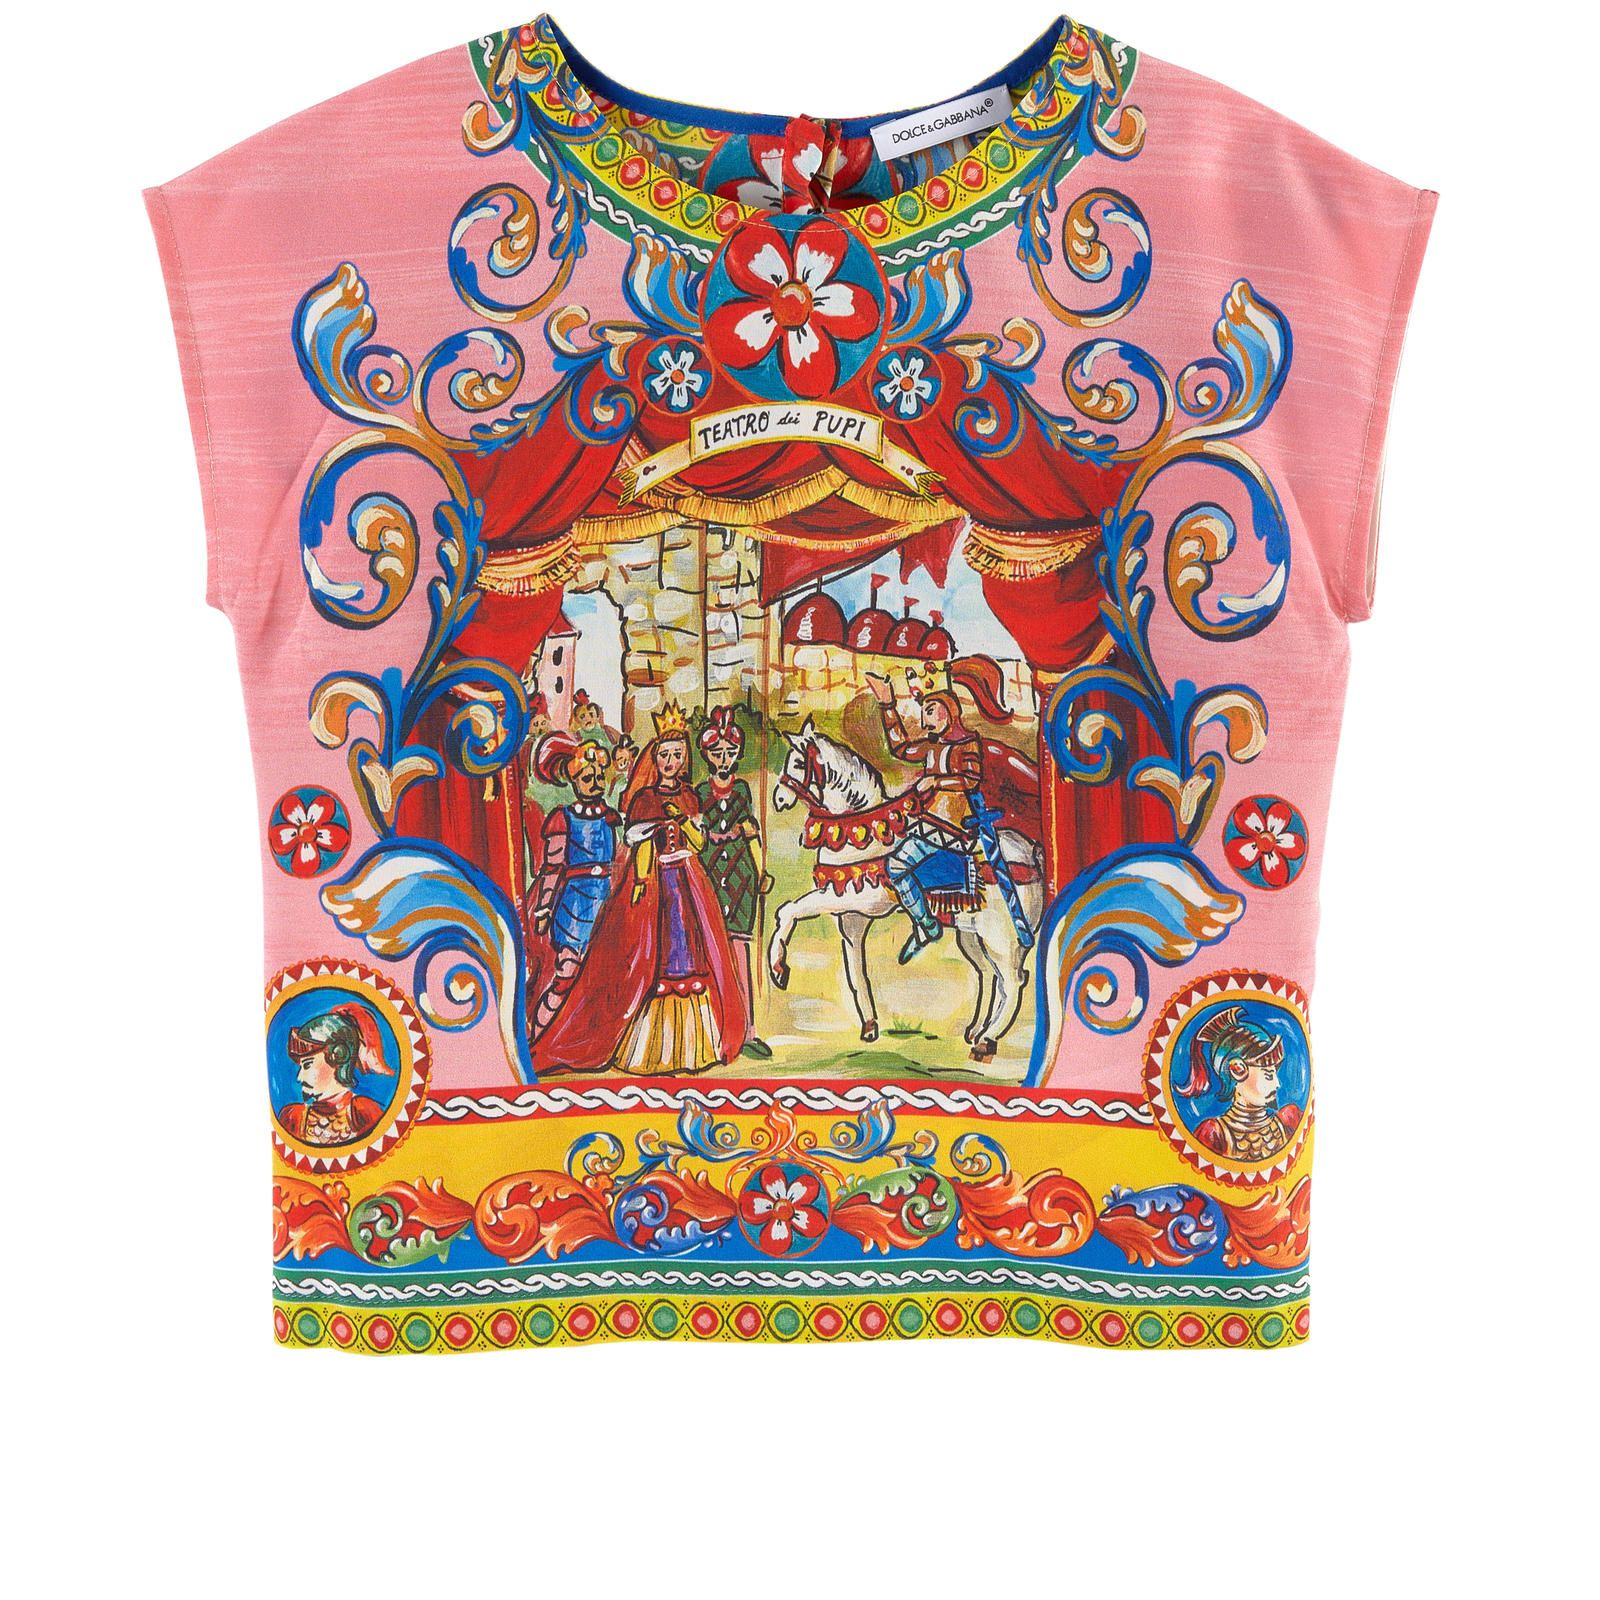 Pure silk Pleasant to wear Mini me item Light item Crew neck Short sleeves Snap buttons in the back Exclusive print - $ 200.00